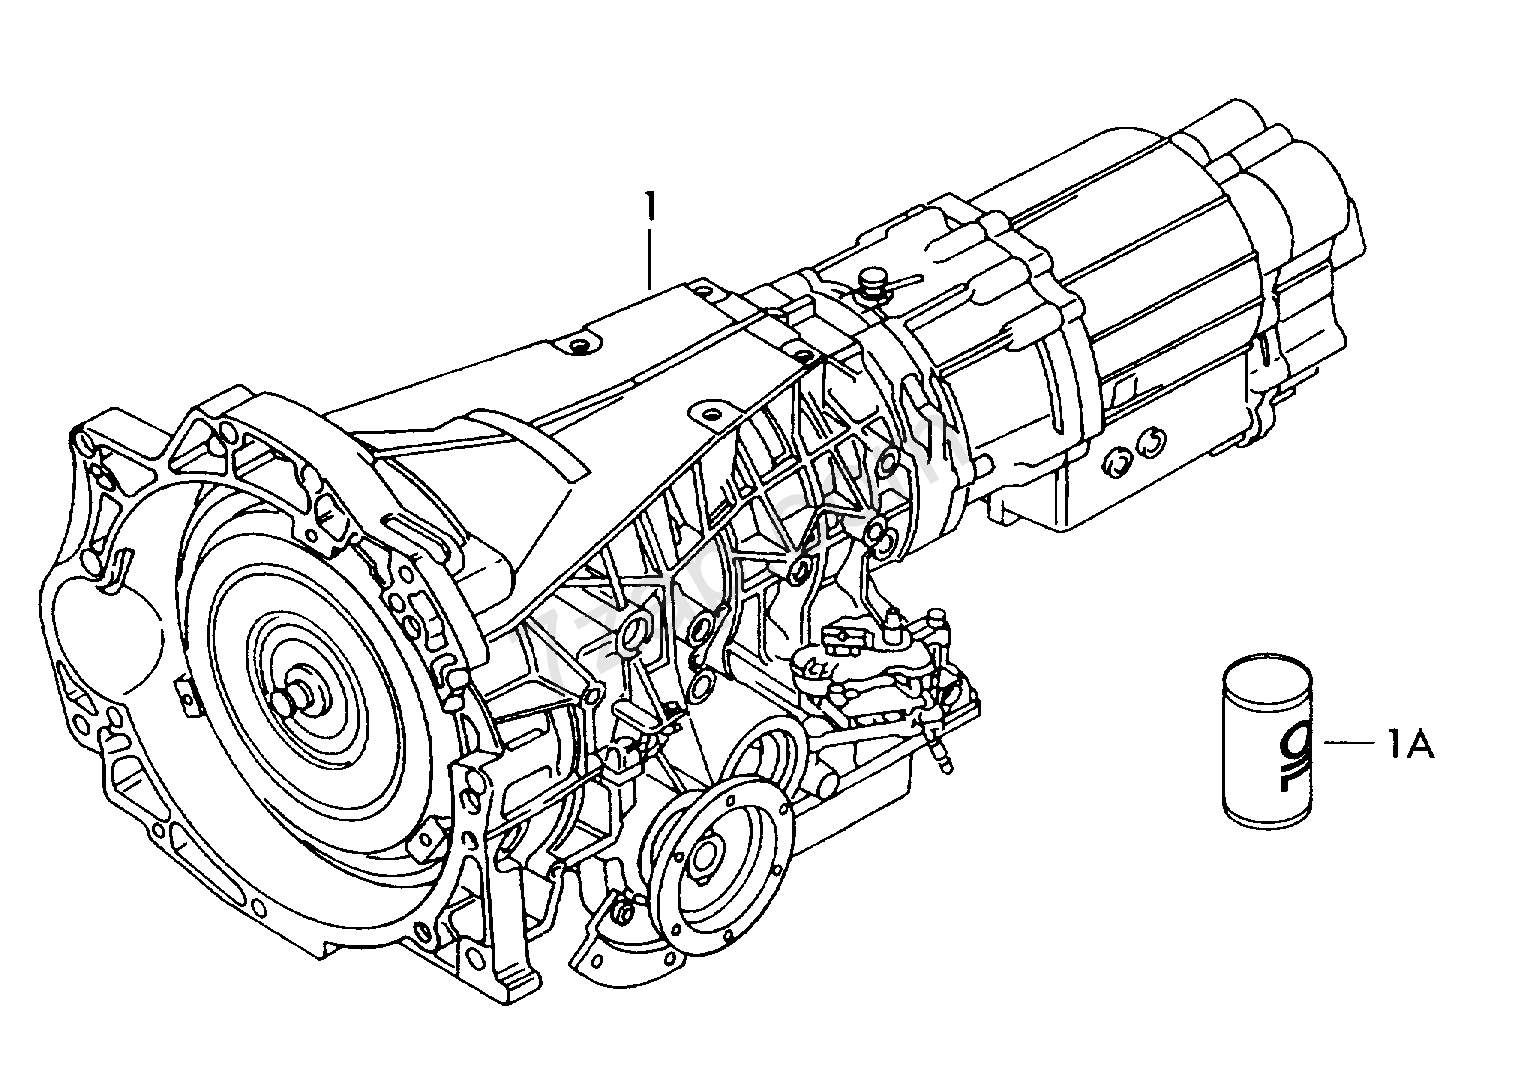 gearbox, complete; 4-speed automatic gearbox Audi 100